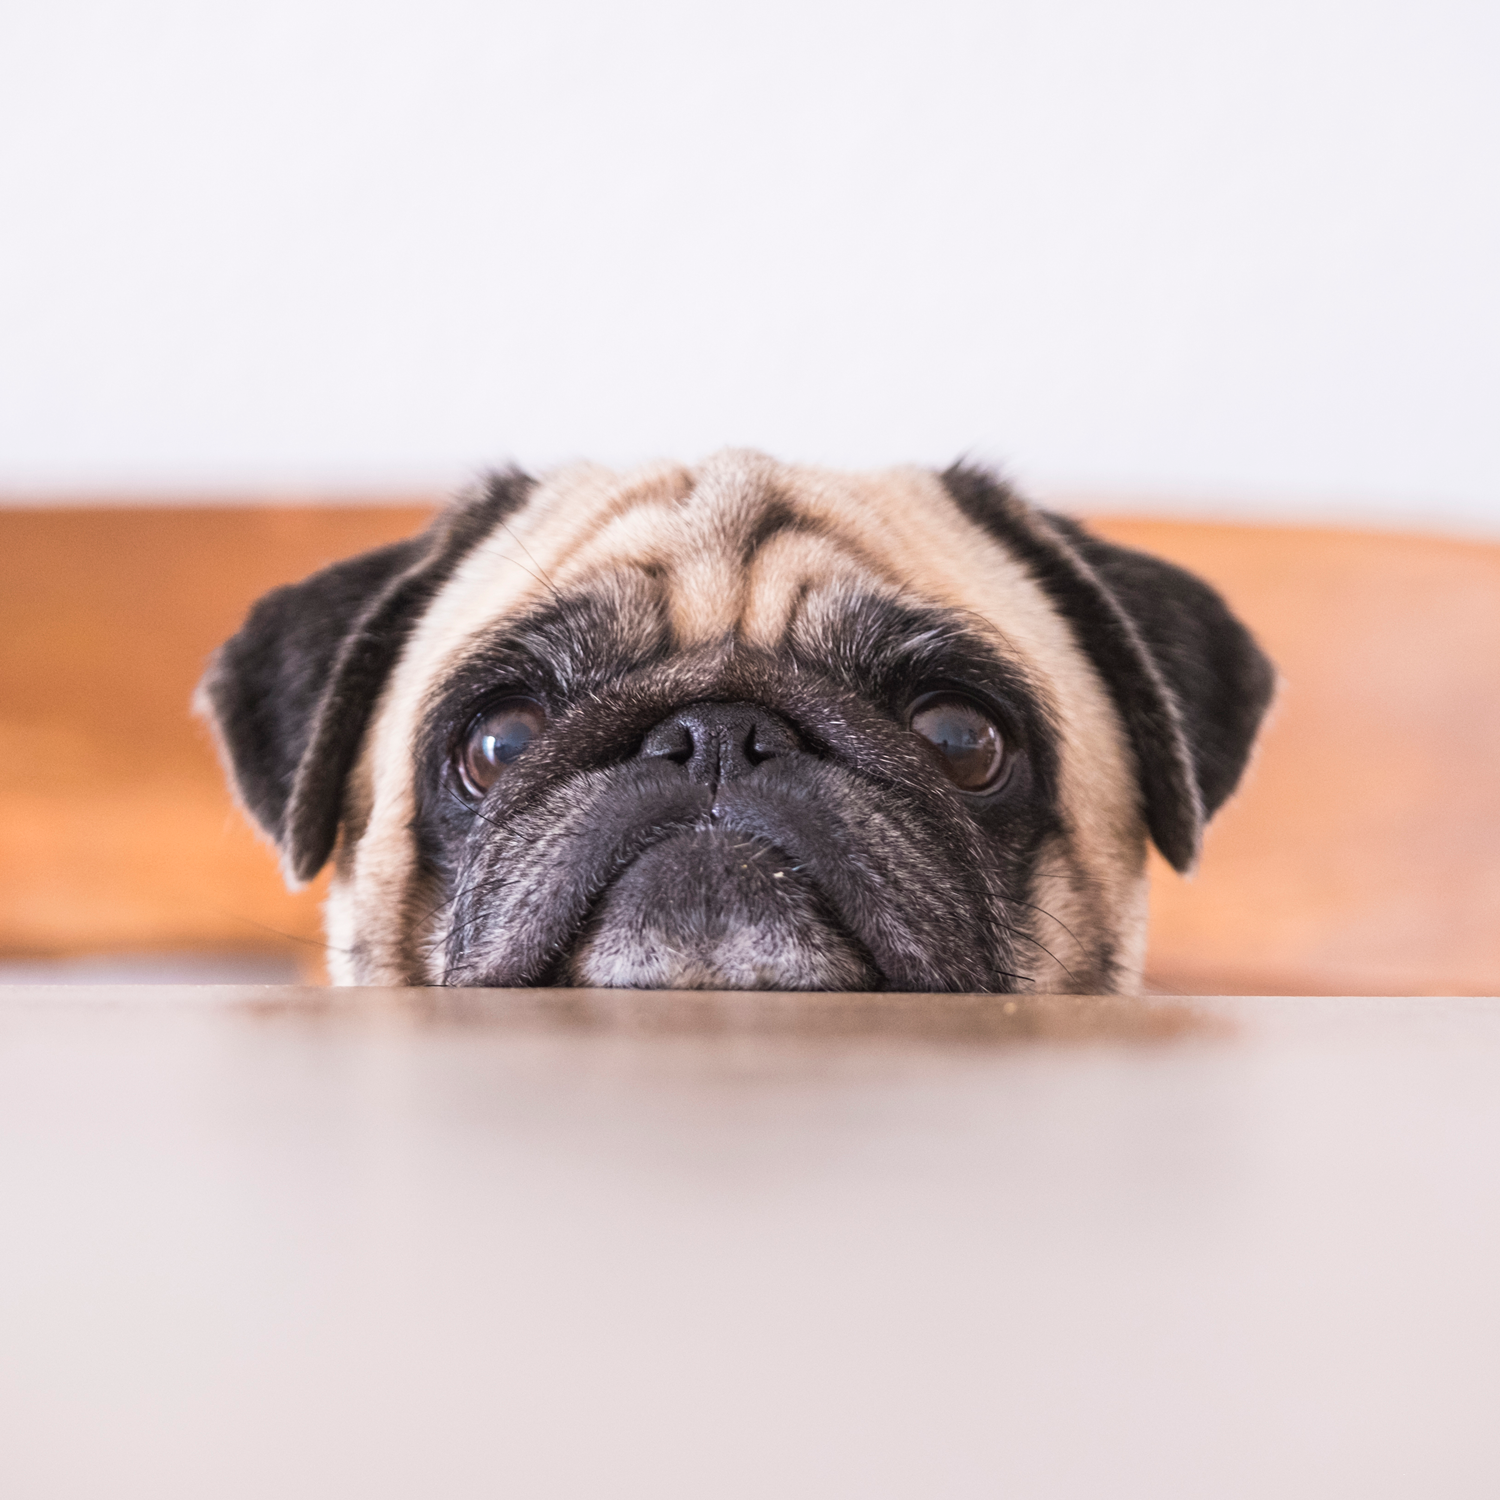 Dog resting chin on table